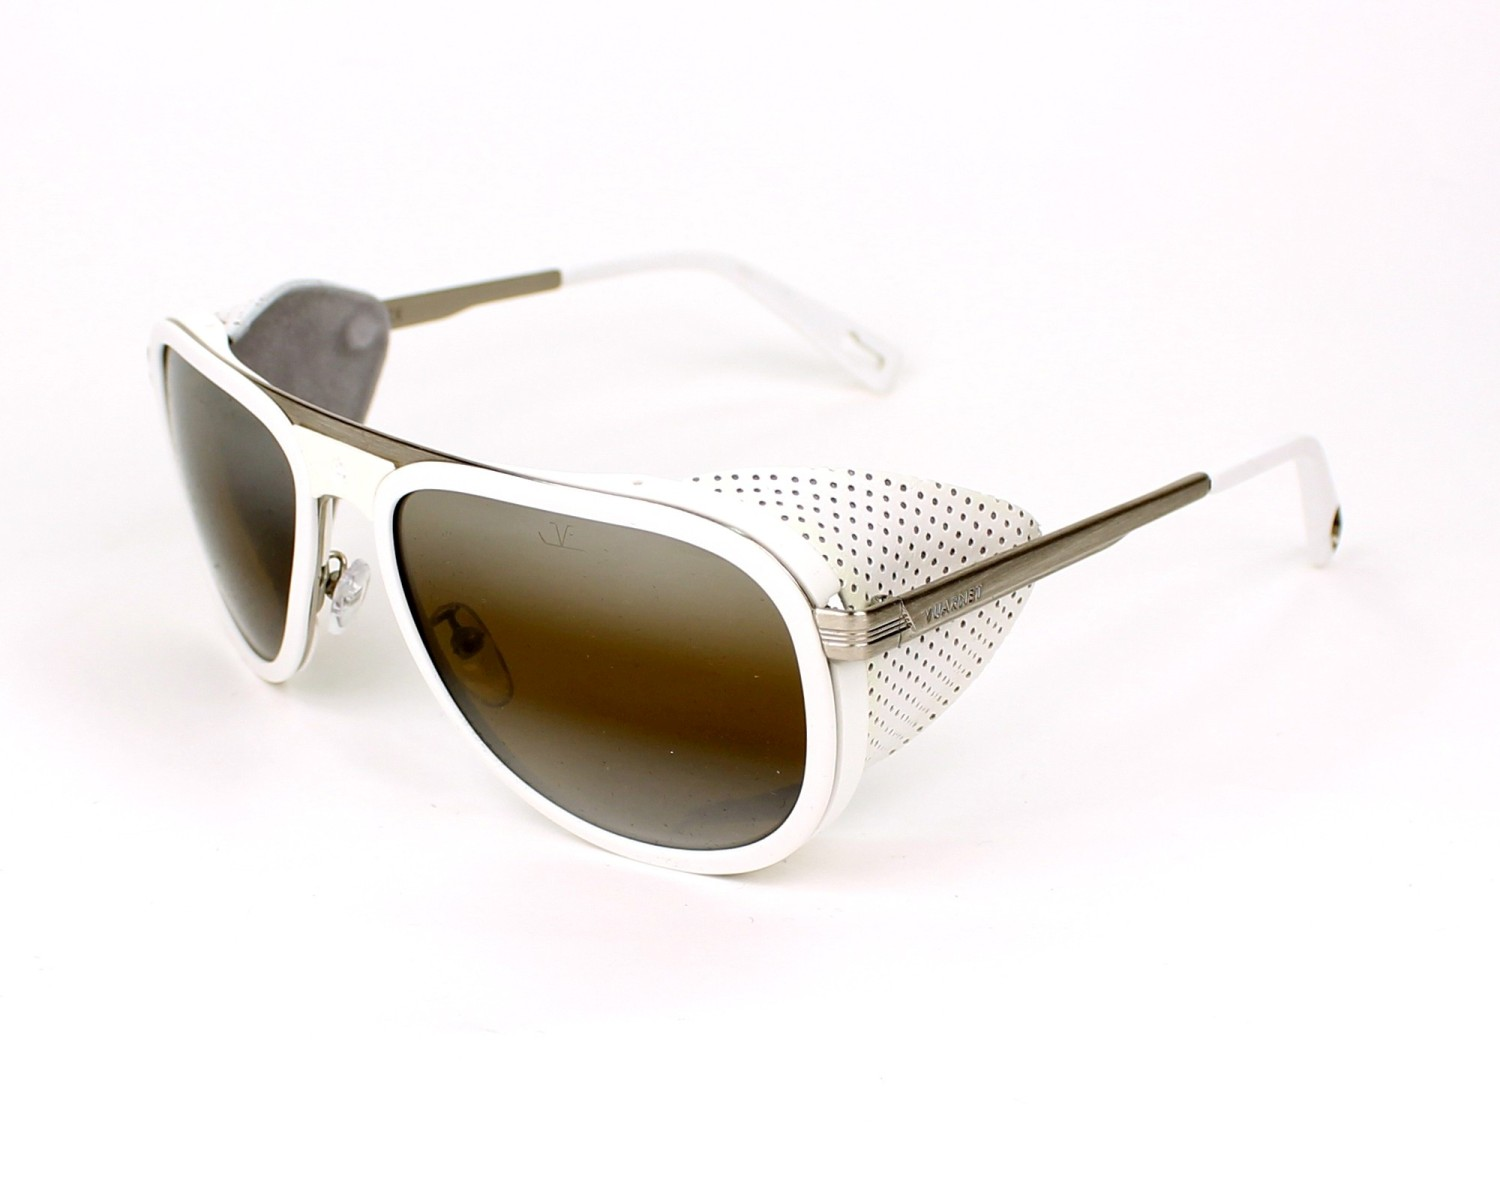 c4677df07a Sunglasses Vuarnet VL-1315 0005 - White Silver profile view